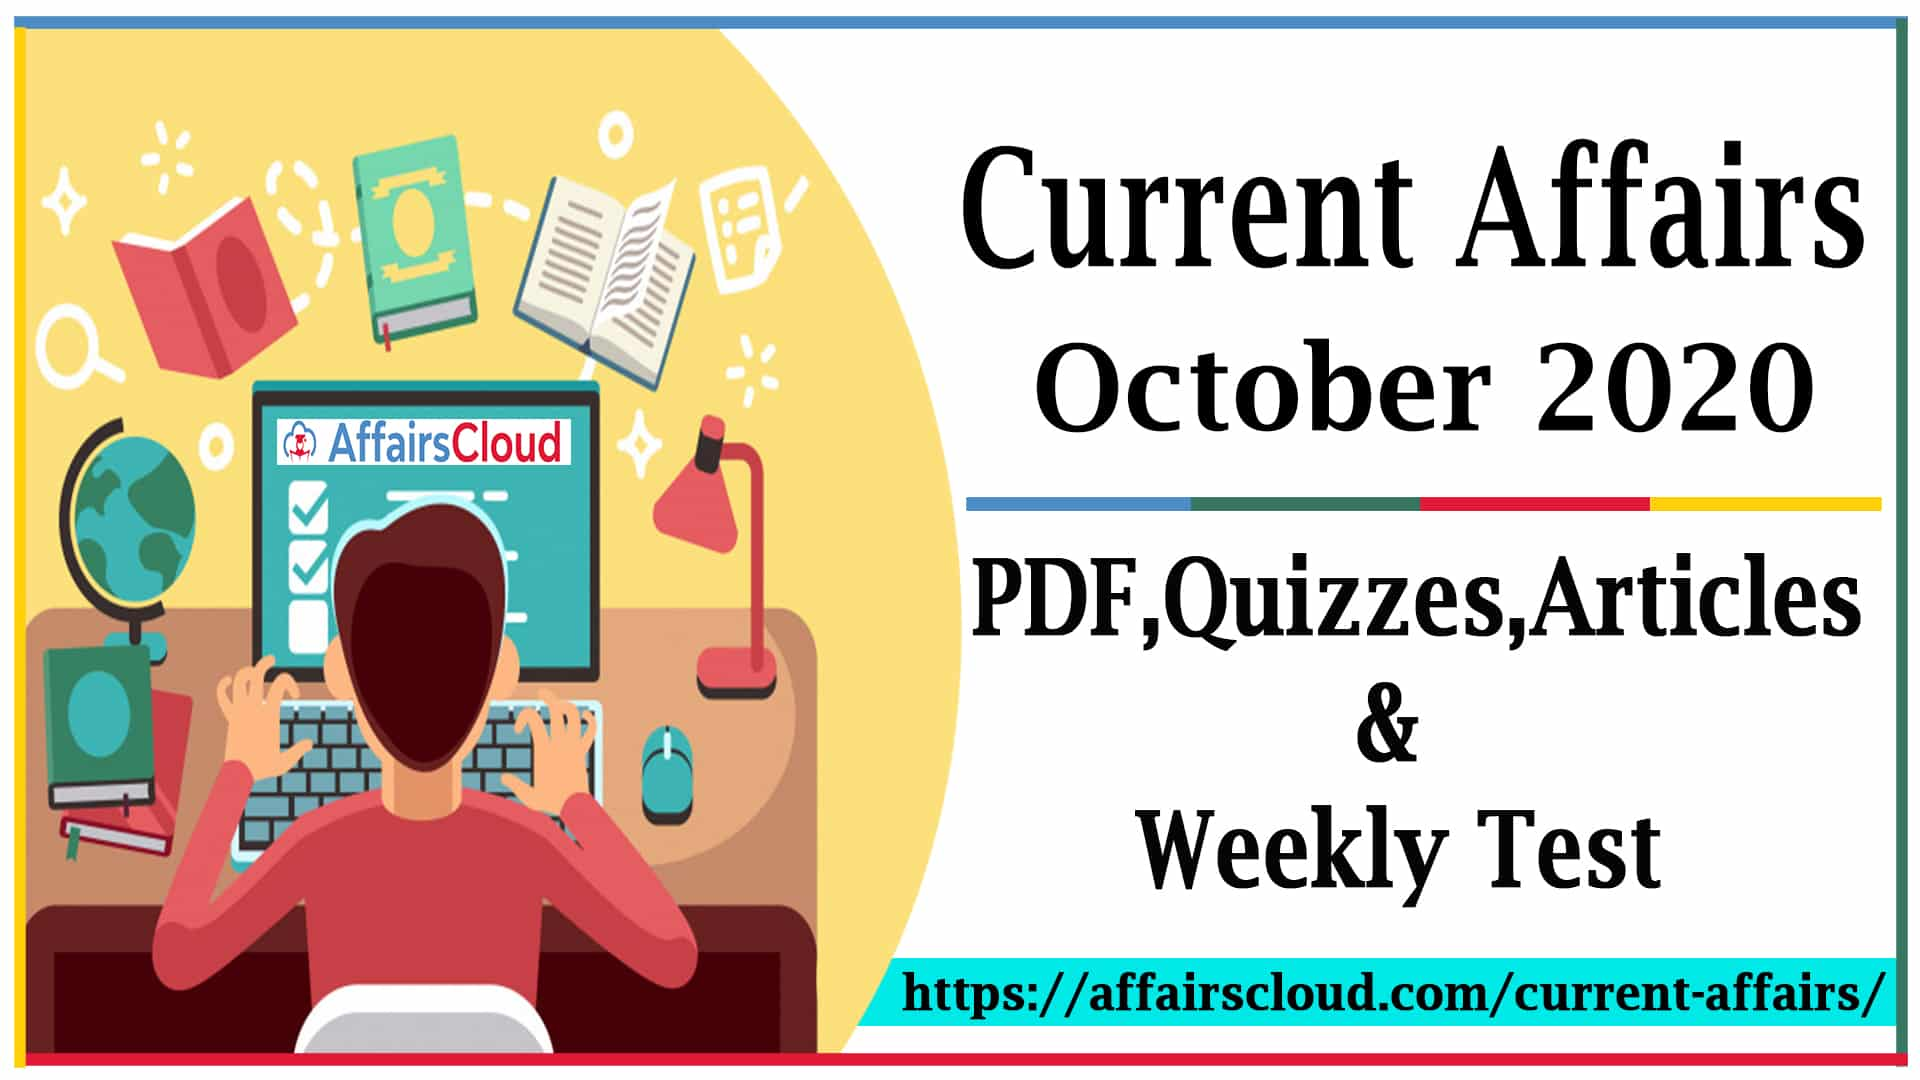 Current Affairs October 2020 new